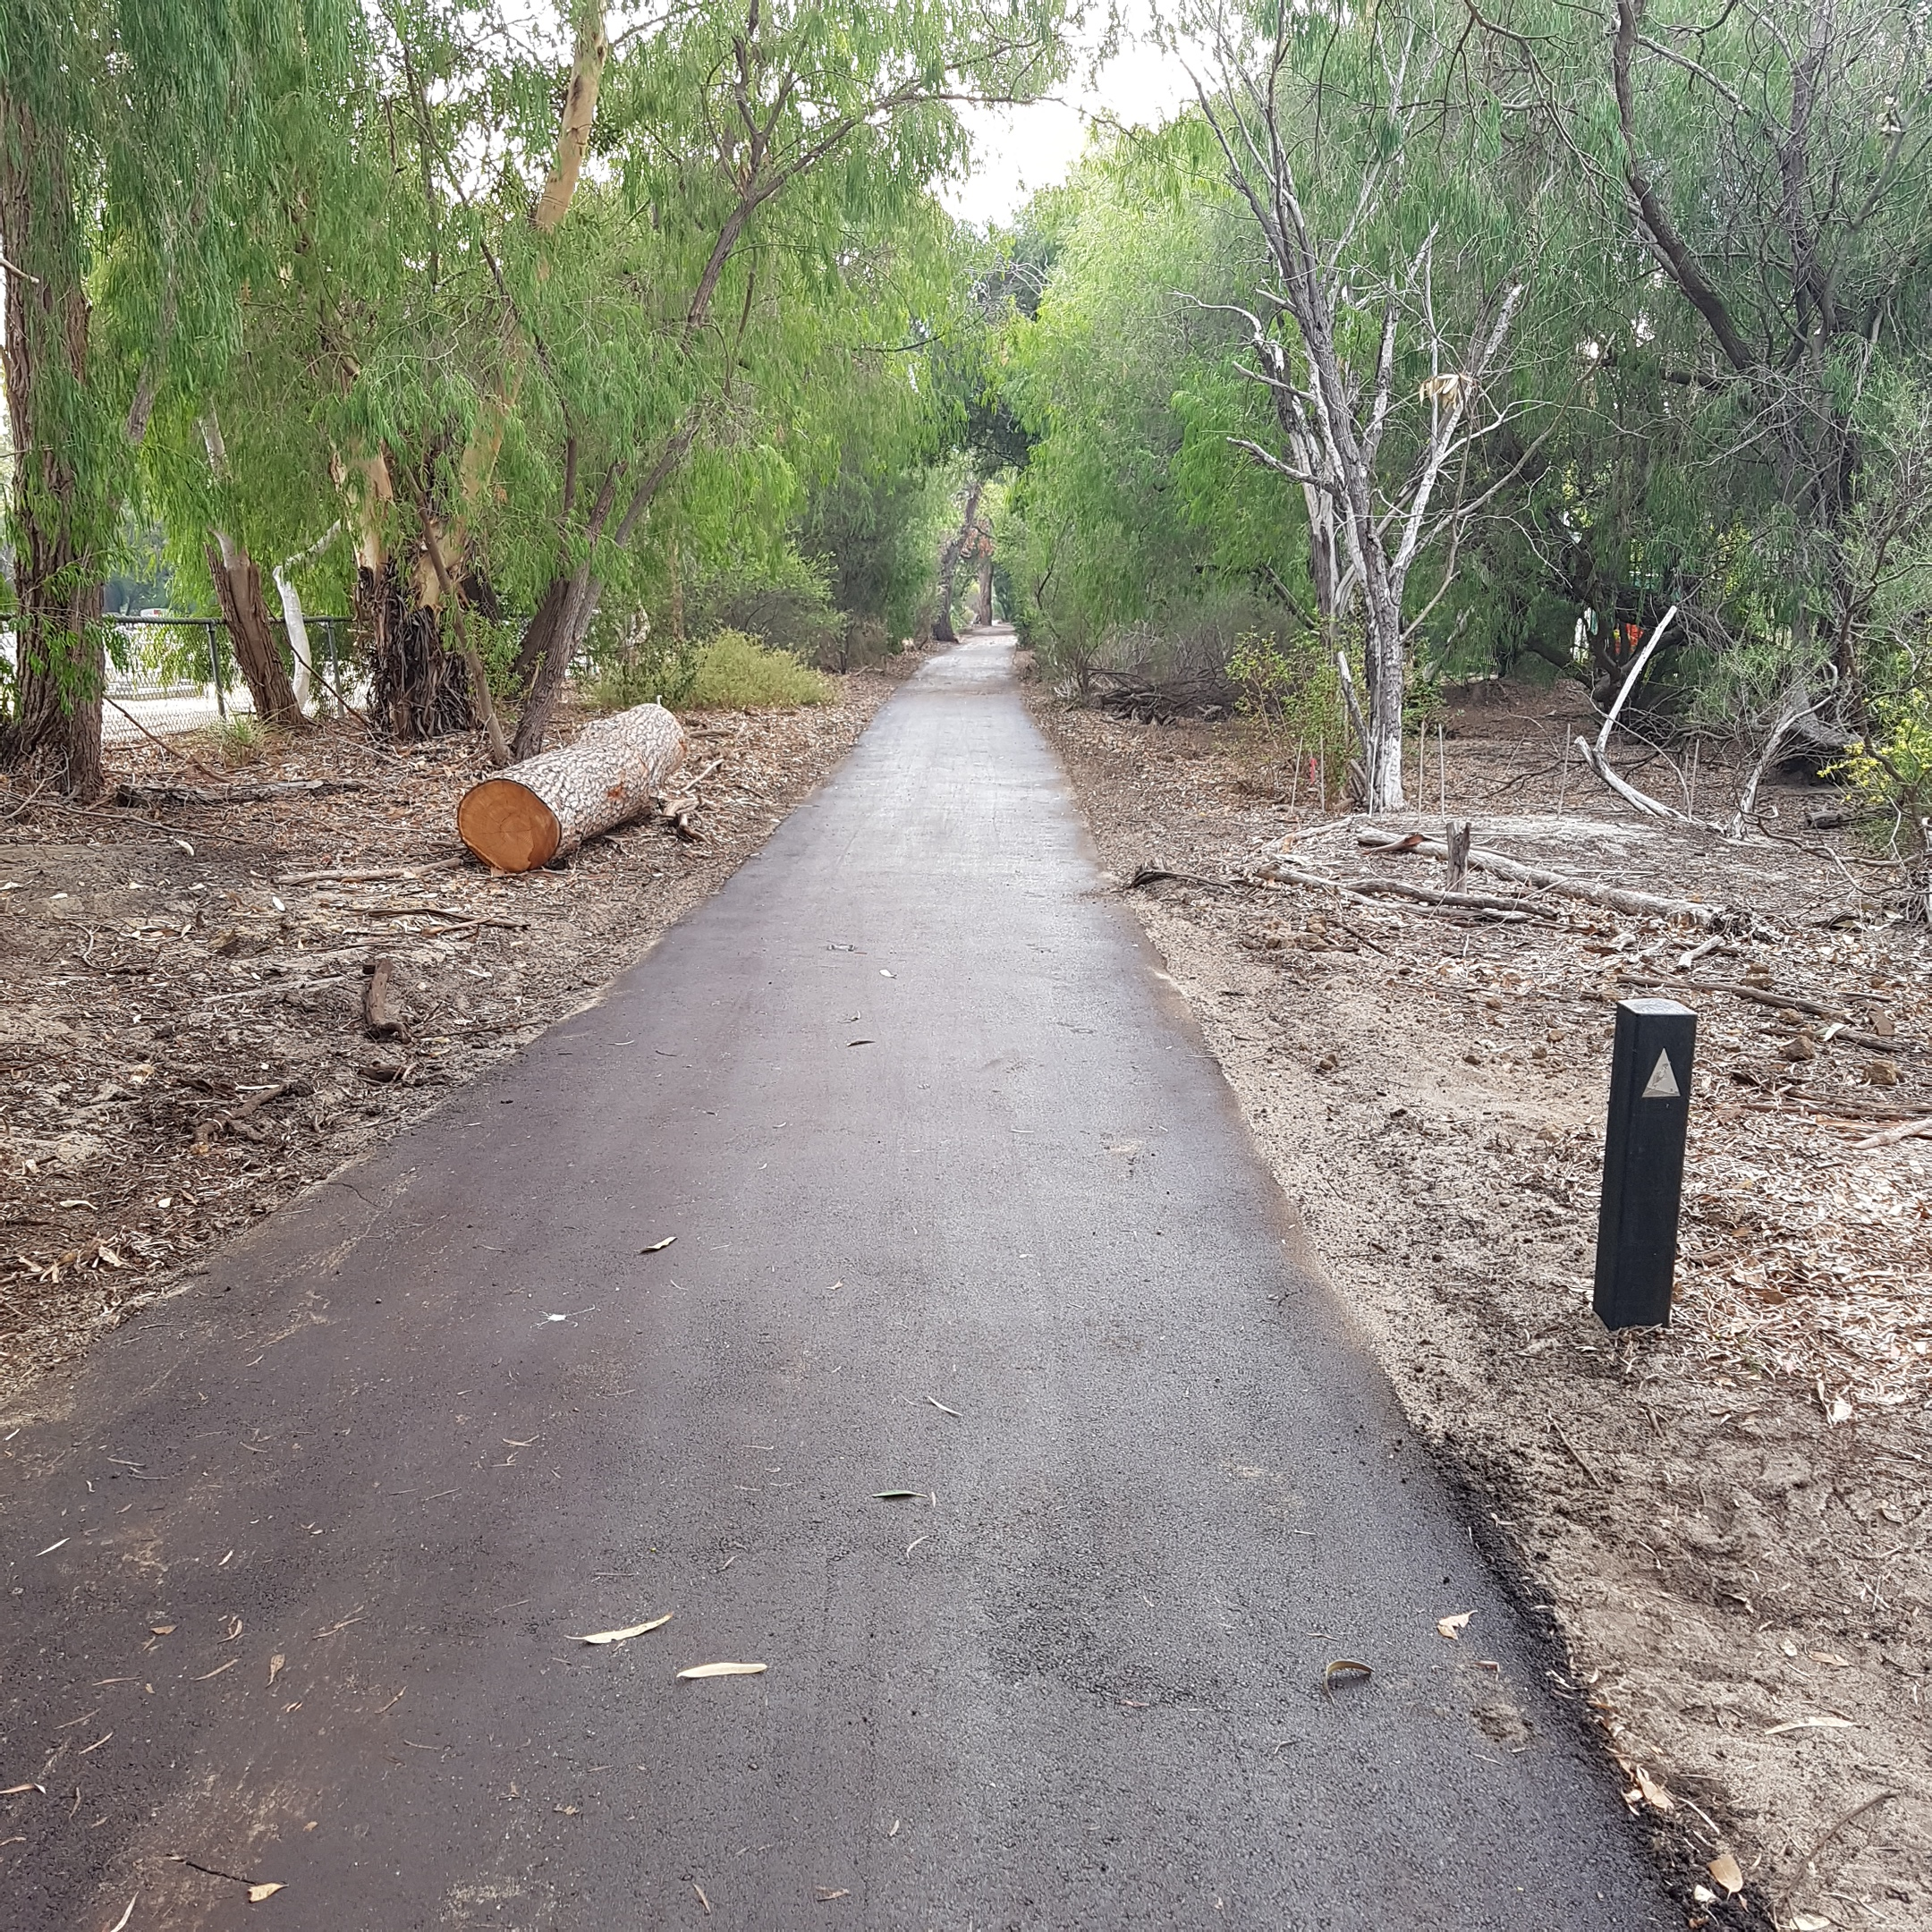 New pathway hollywood 7.6.19